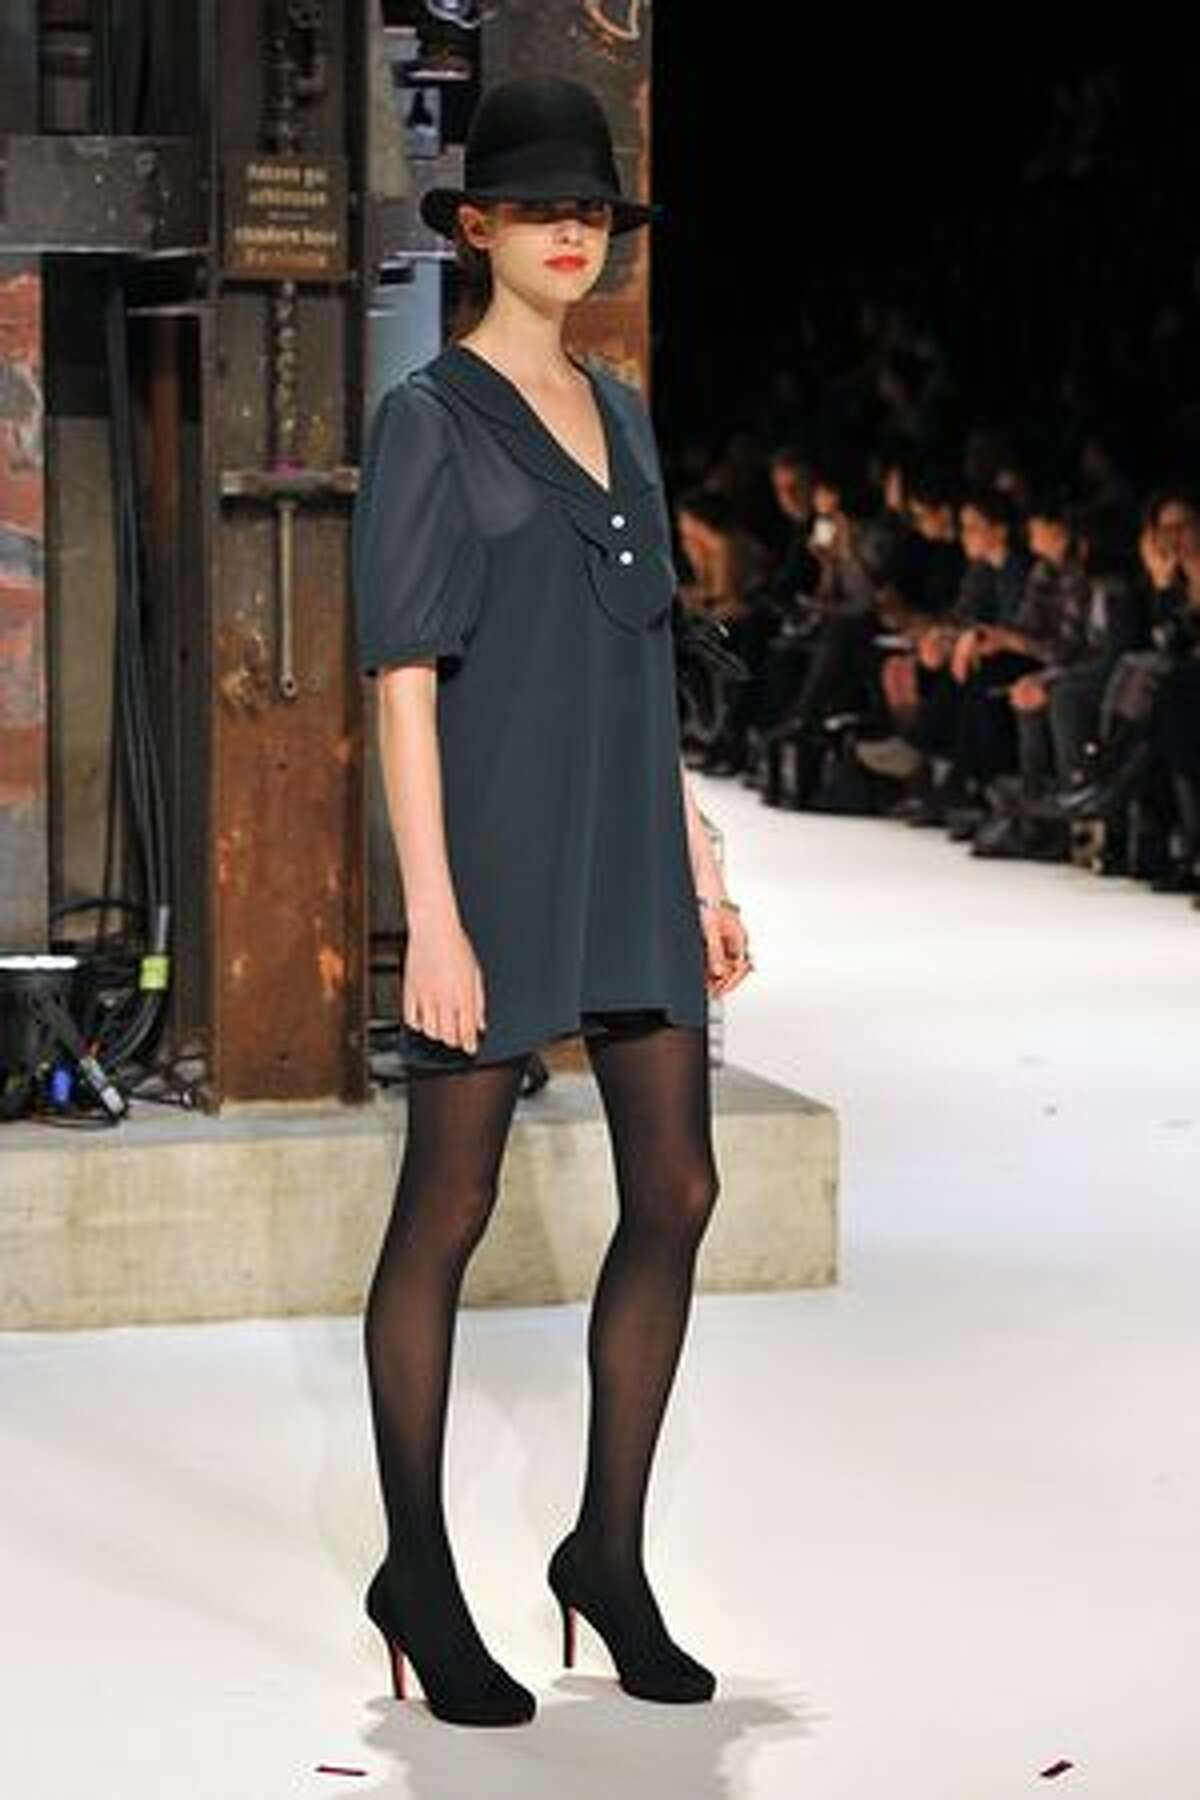 A model walks the catwalk during the second day of the Charles Vogele Fashion Days in Zurich, Switzerland.